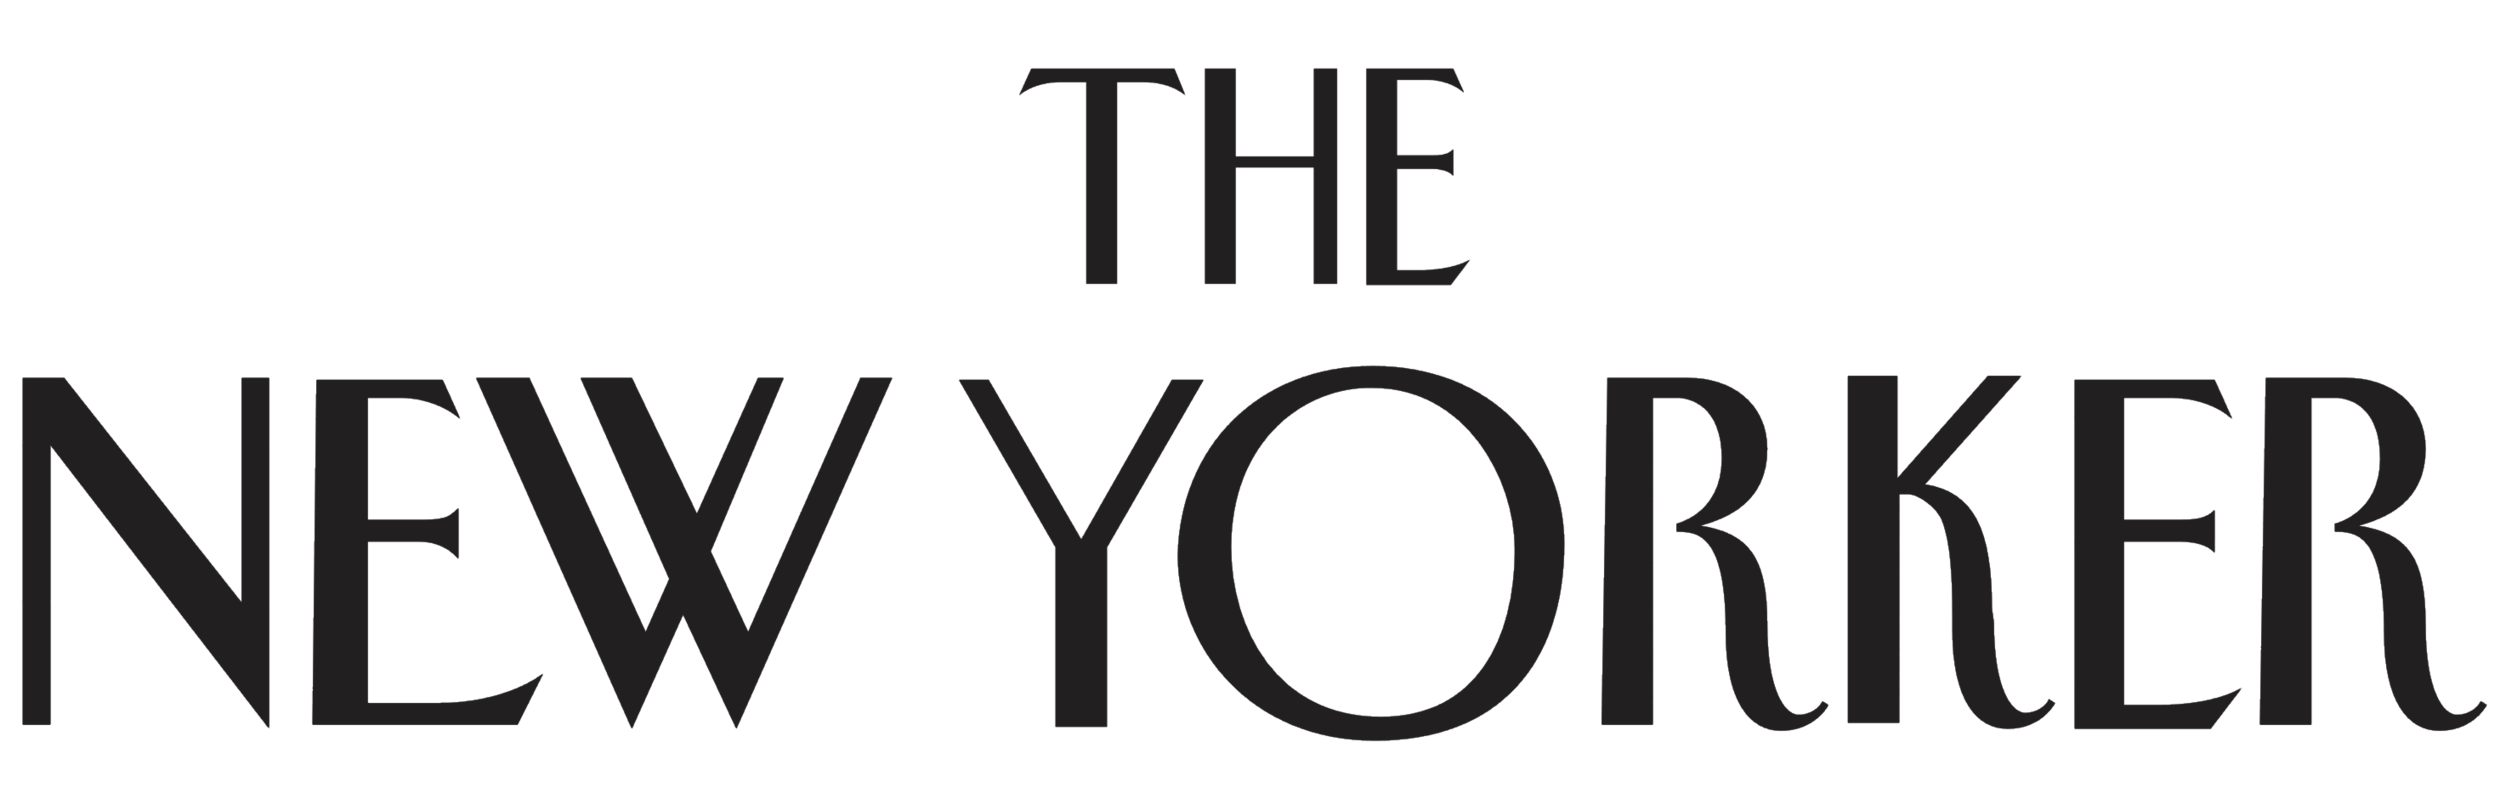 The_New_Yorker_logo.png